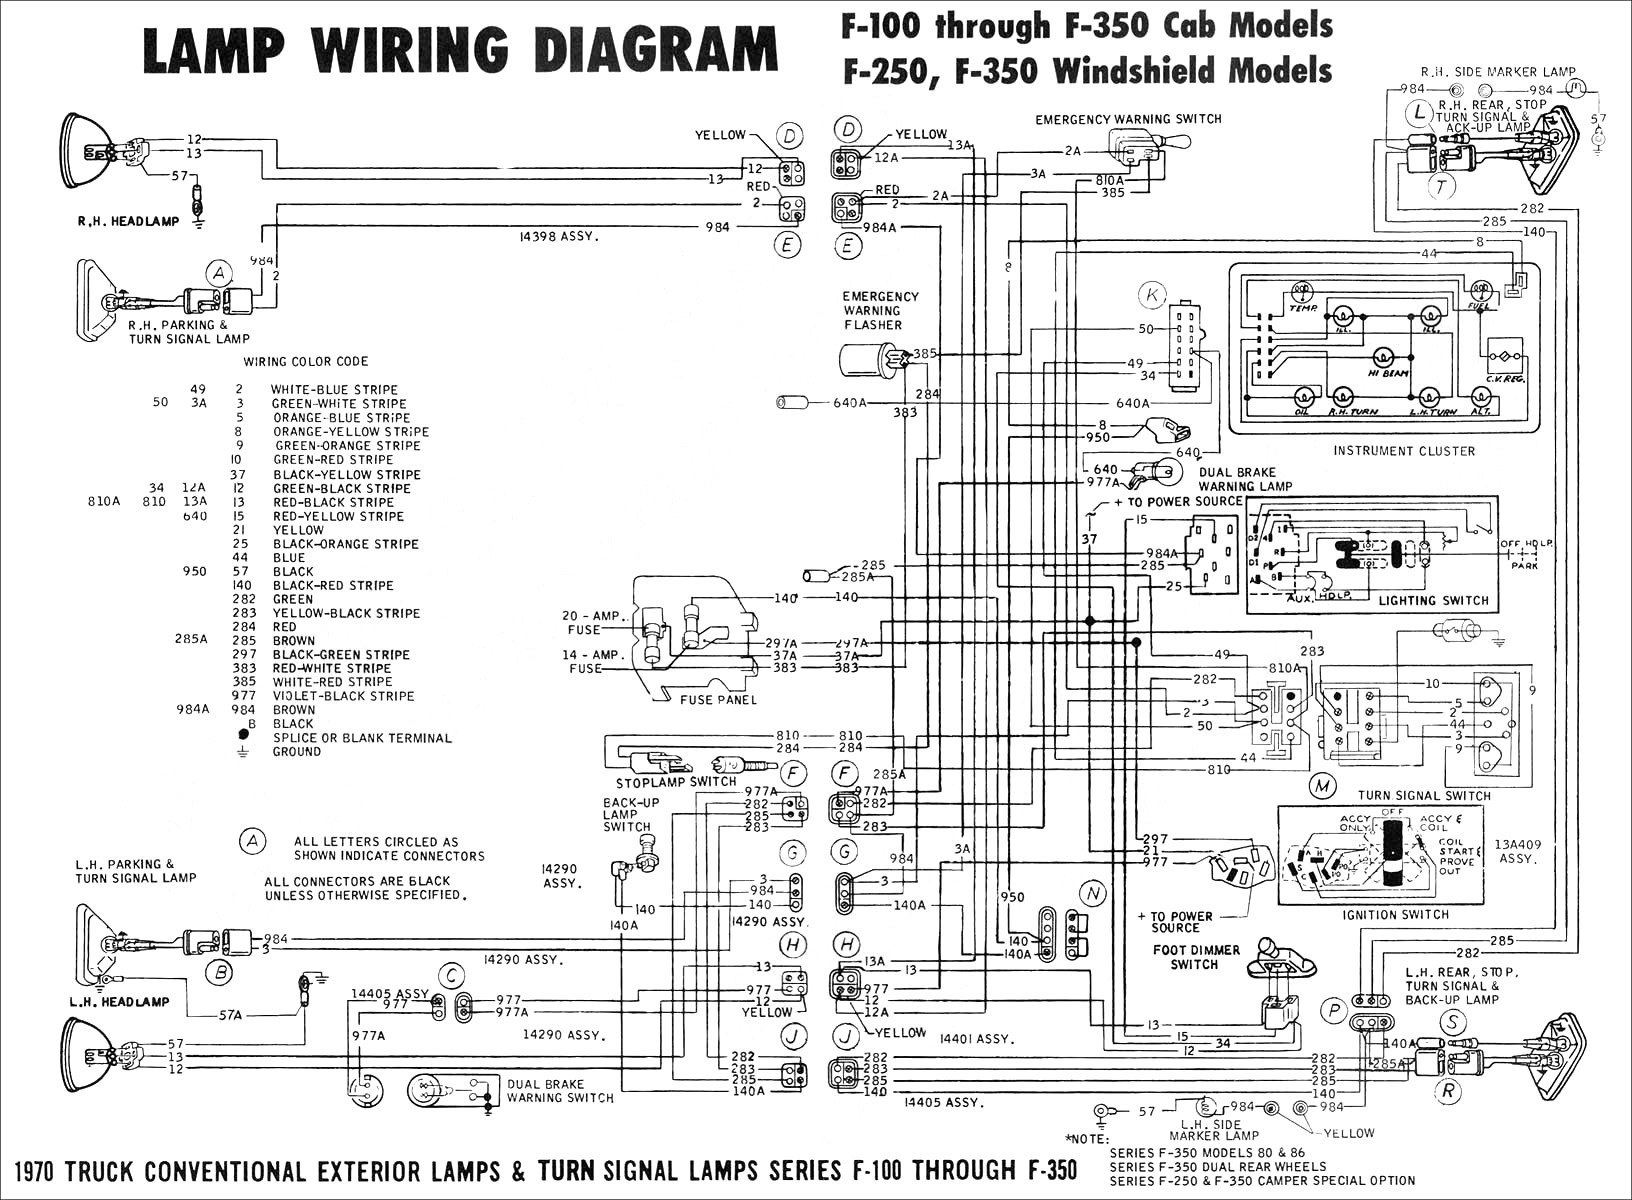 2008 ford Escape Engine Diagram 2008 ford F250 Wiring Diagram Daigram Throughout Of 2008 ford Escape Engine Diagram